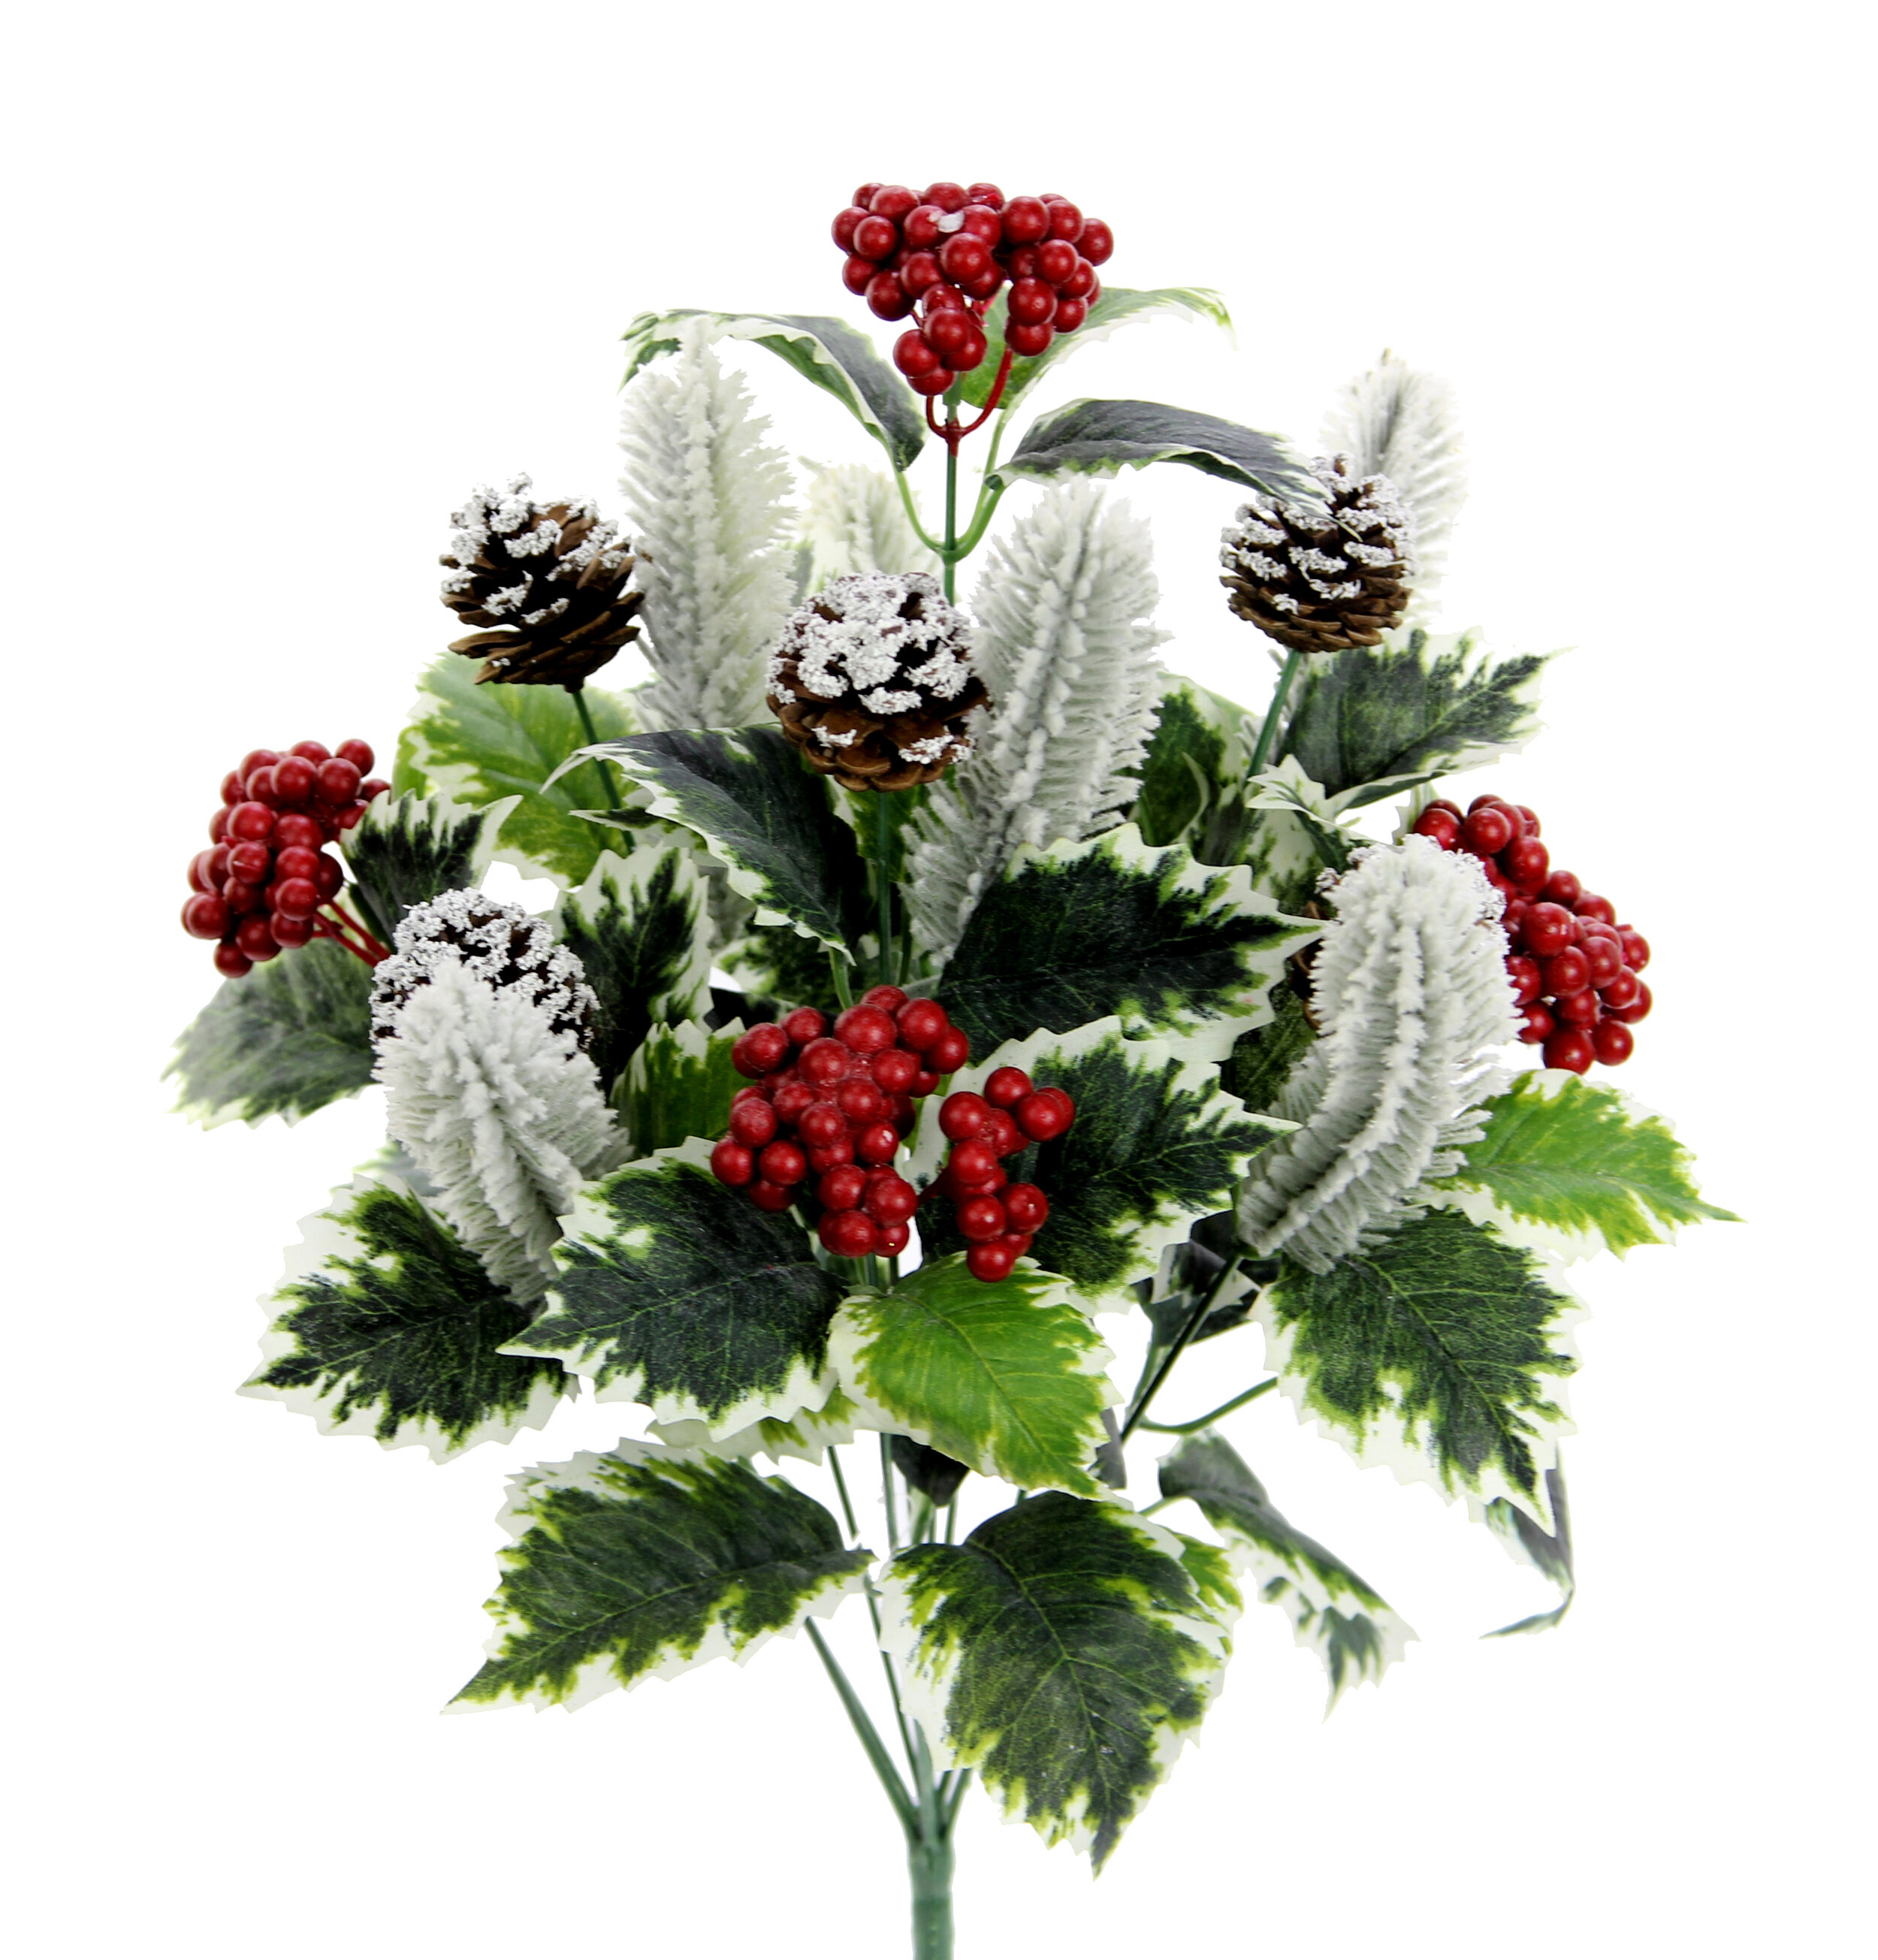 Loon Peak 10 Stems Artificial Holly Leaves Red Berries And Pinecone